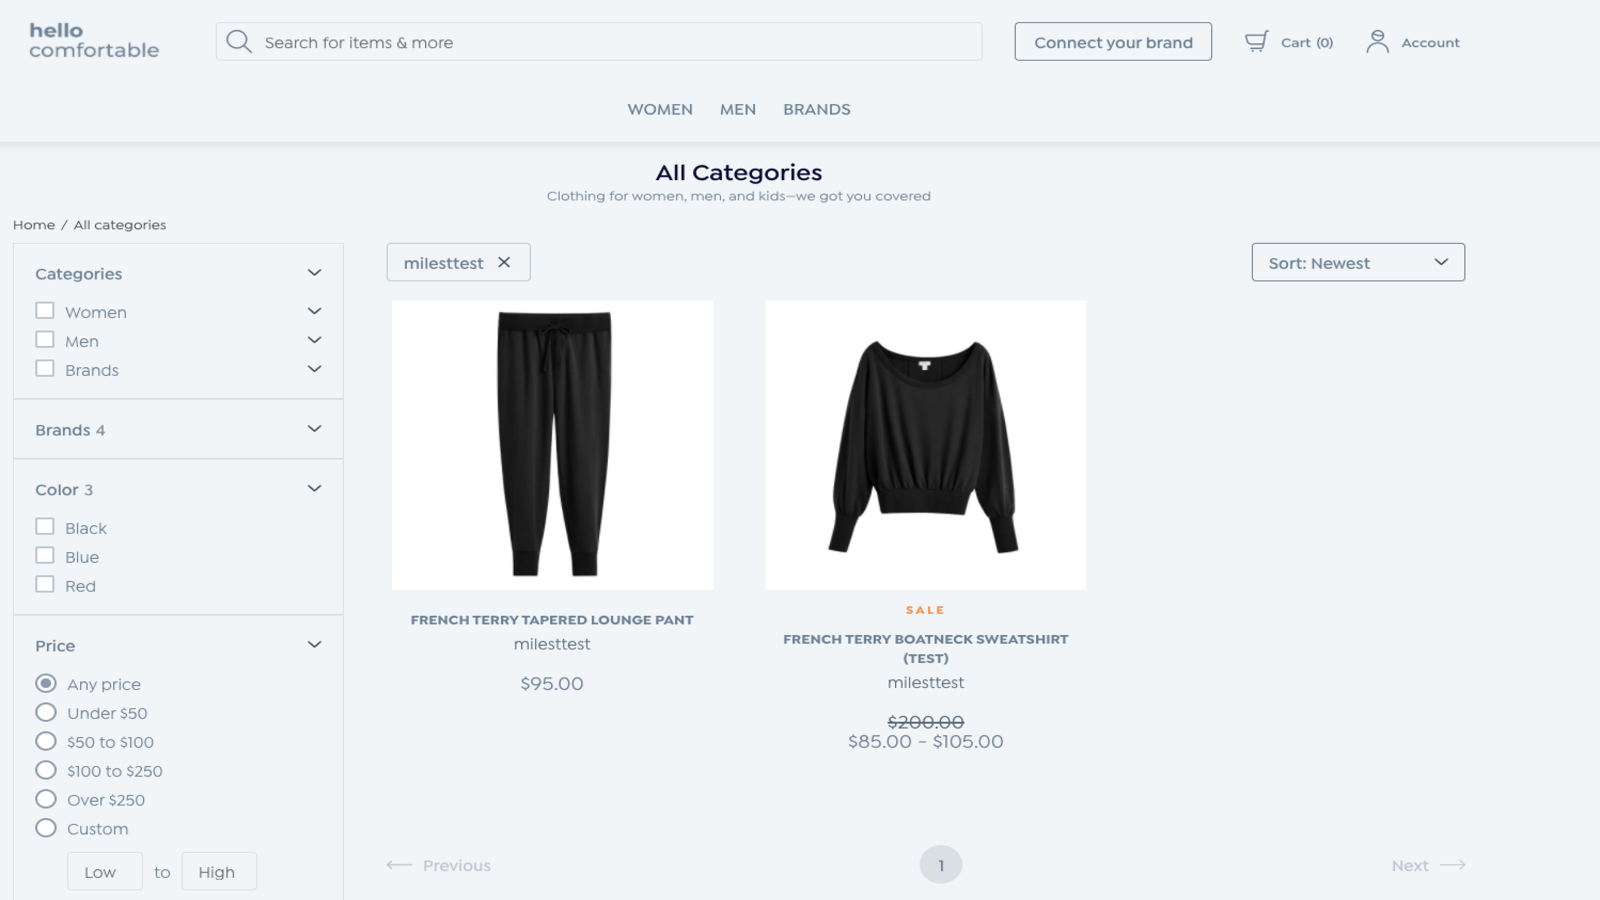 HelloComfortable product listing